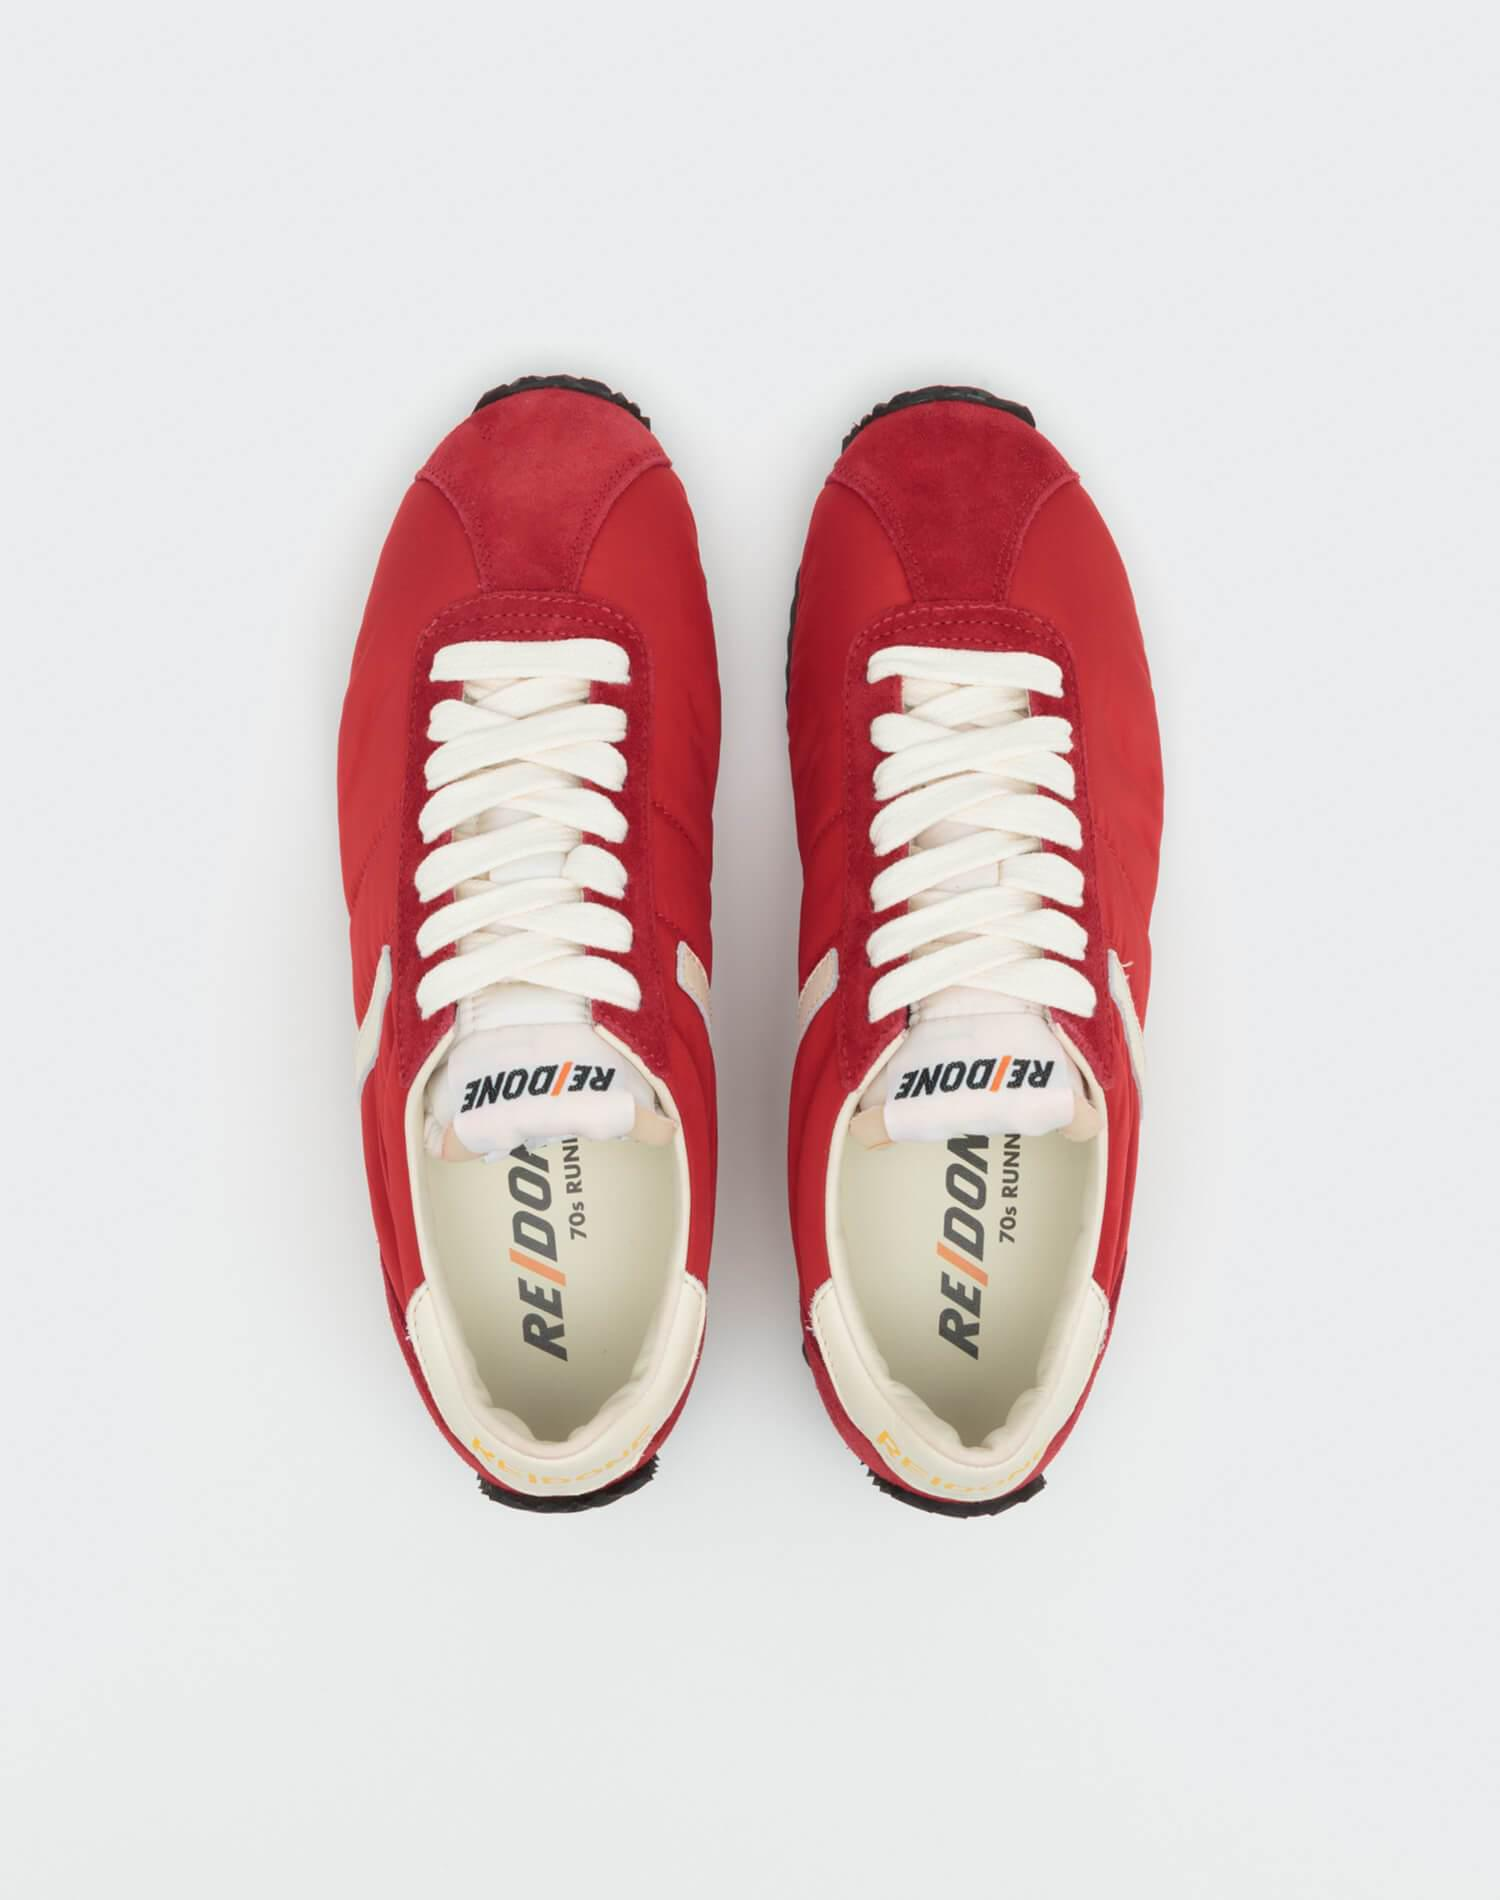 70s Runner Shoe - Red and White 2